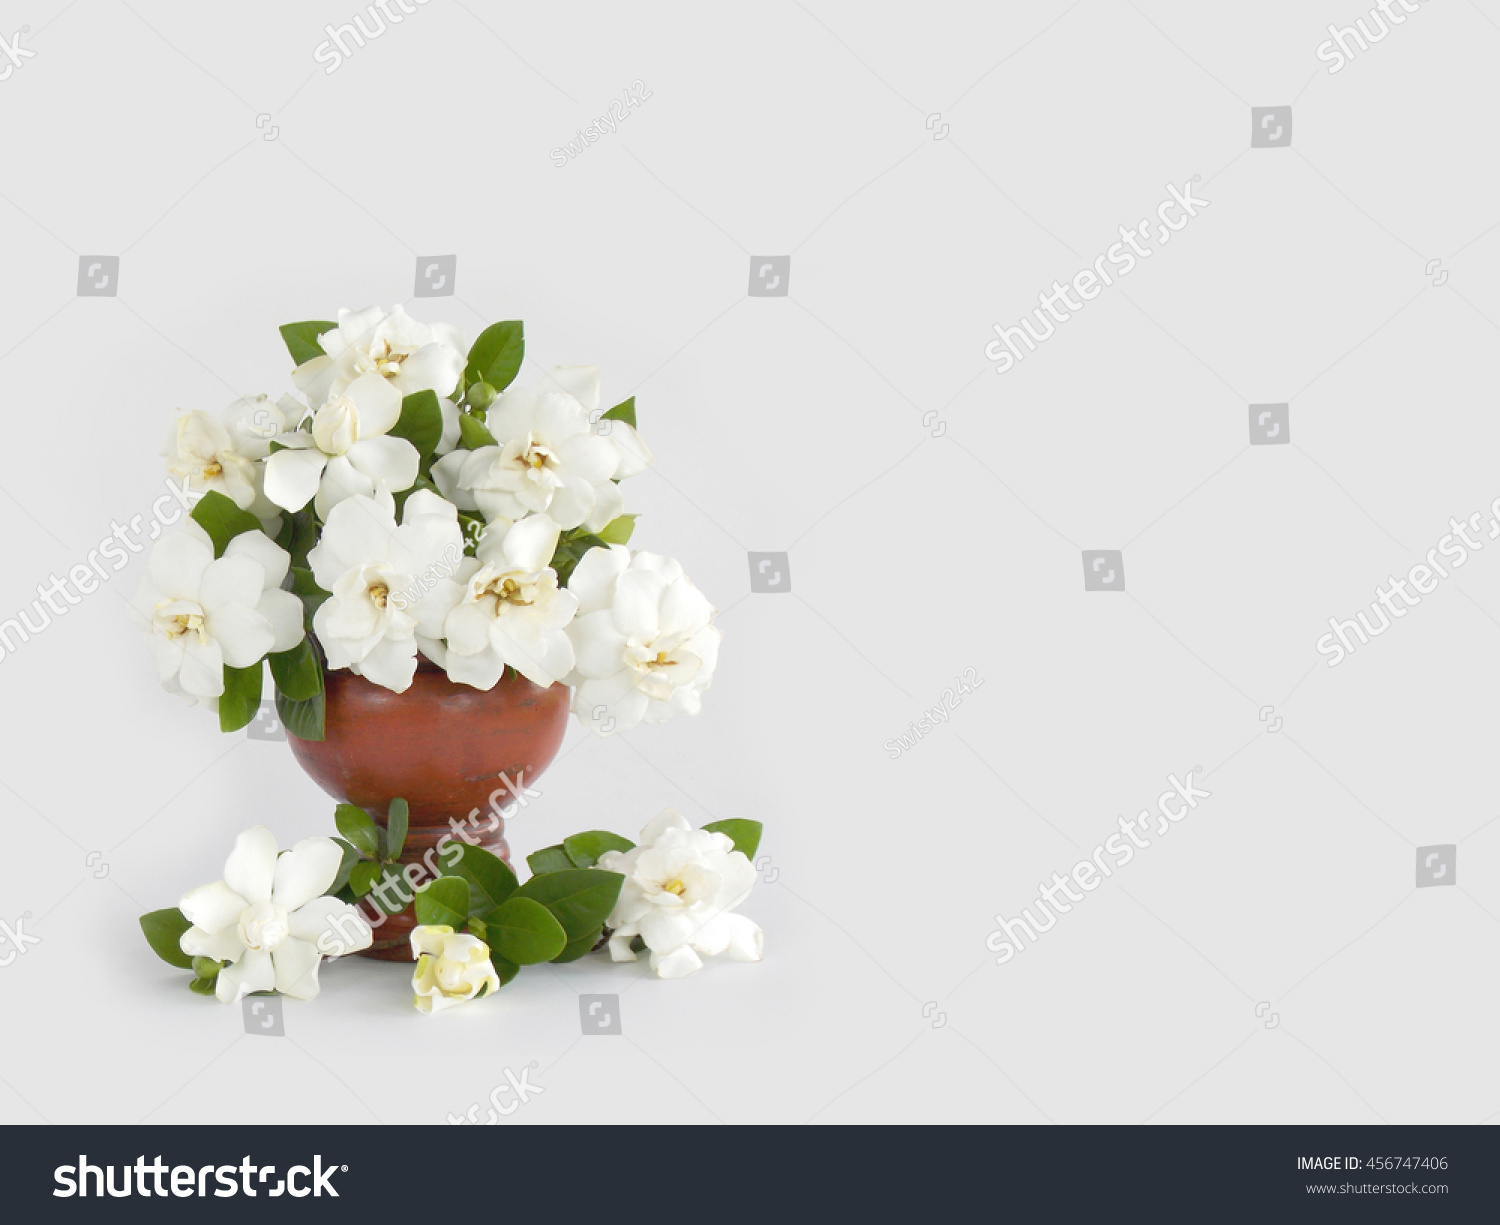 Beautiful Gardenia Flower Bouquet Vase On Stock Photo (Safe to Use ...